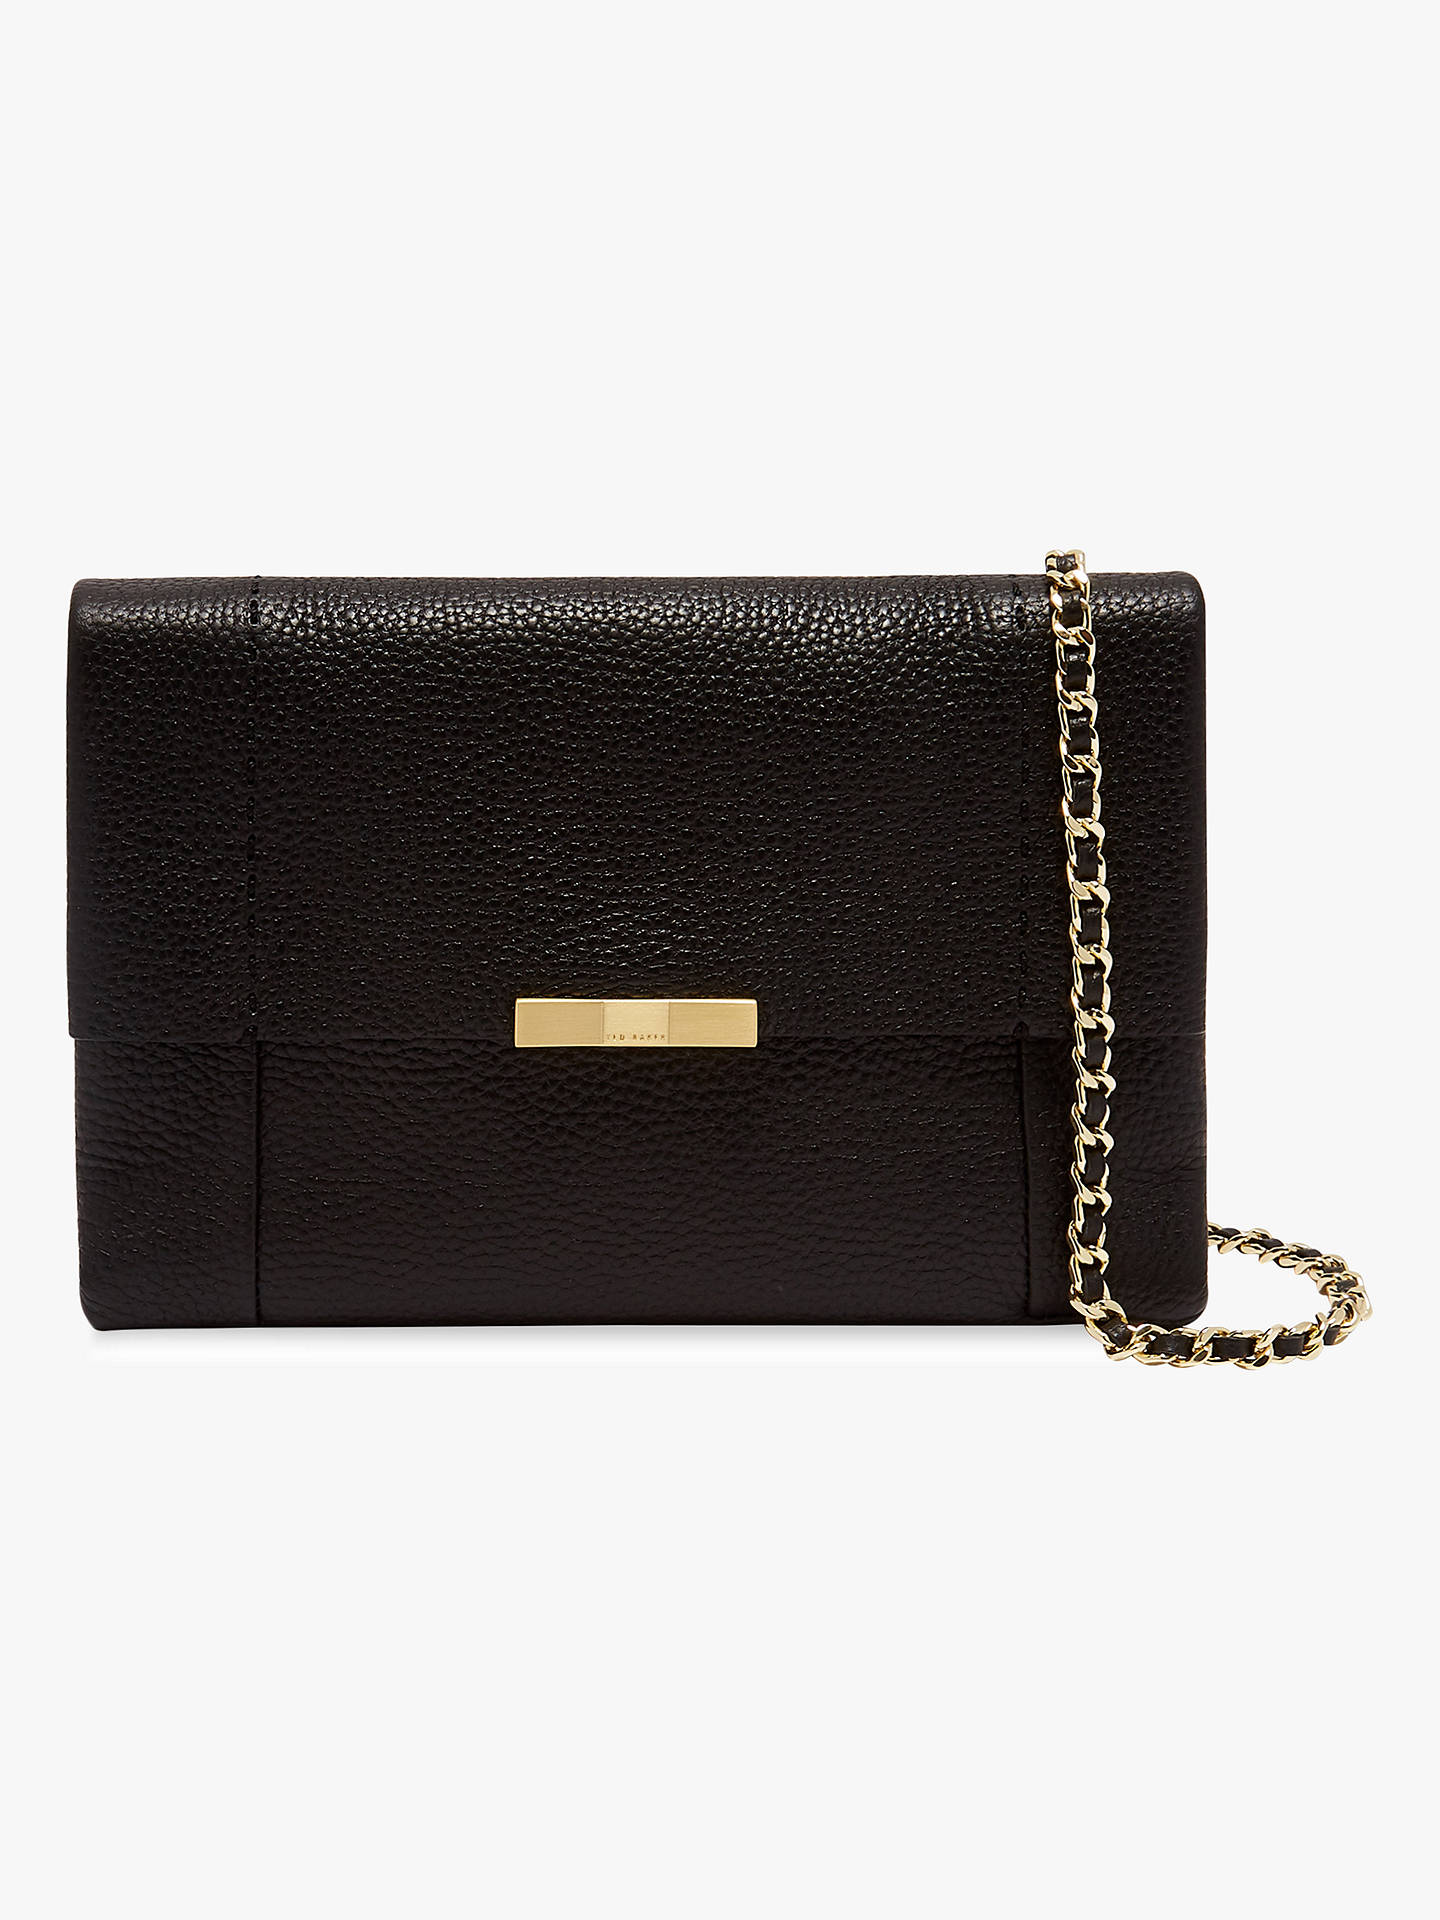 682cb0c32 Ted Baker Clarria Leather Cross Body Bag at John Lewis   Partners